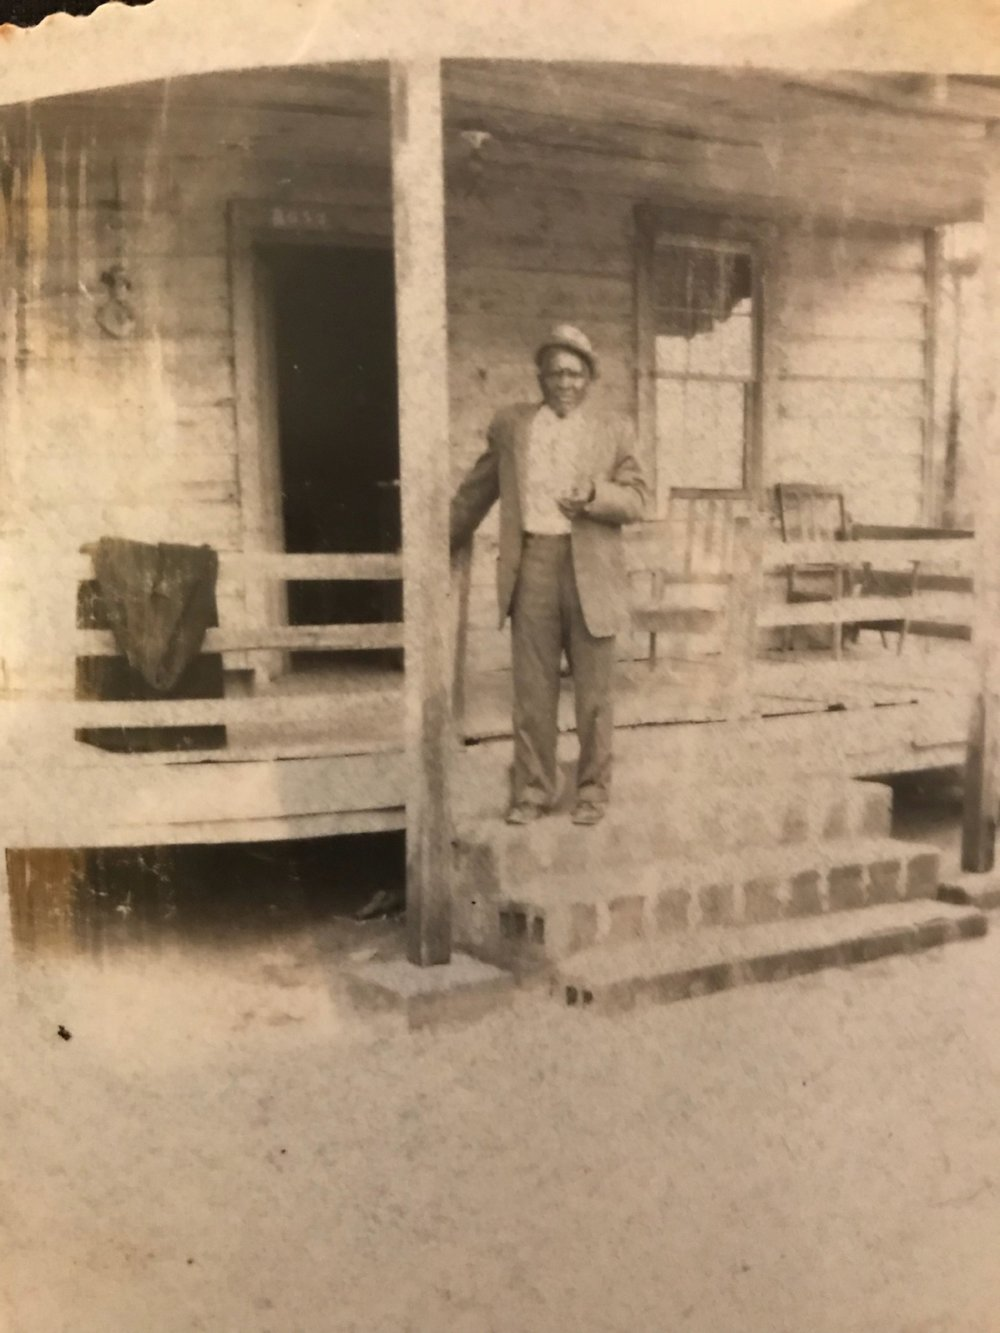 A rare photo of Jenkins McFadden, one of the many sons of Samuel James McFadden. He was born in 1892.